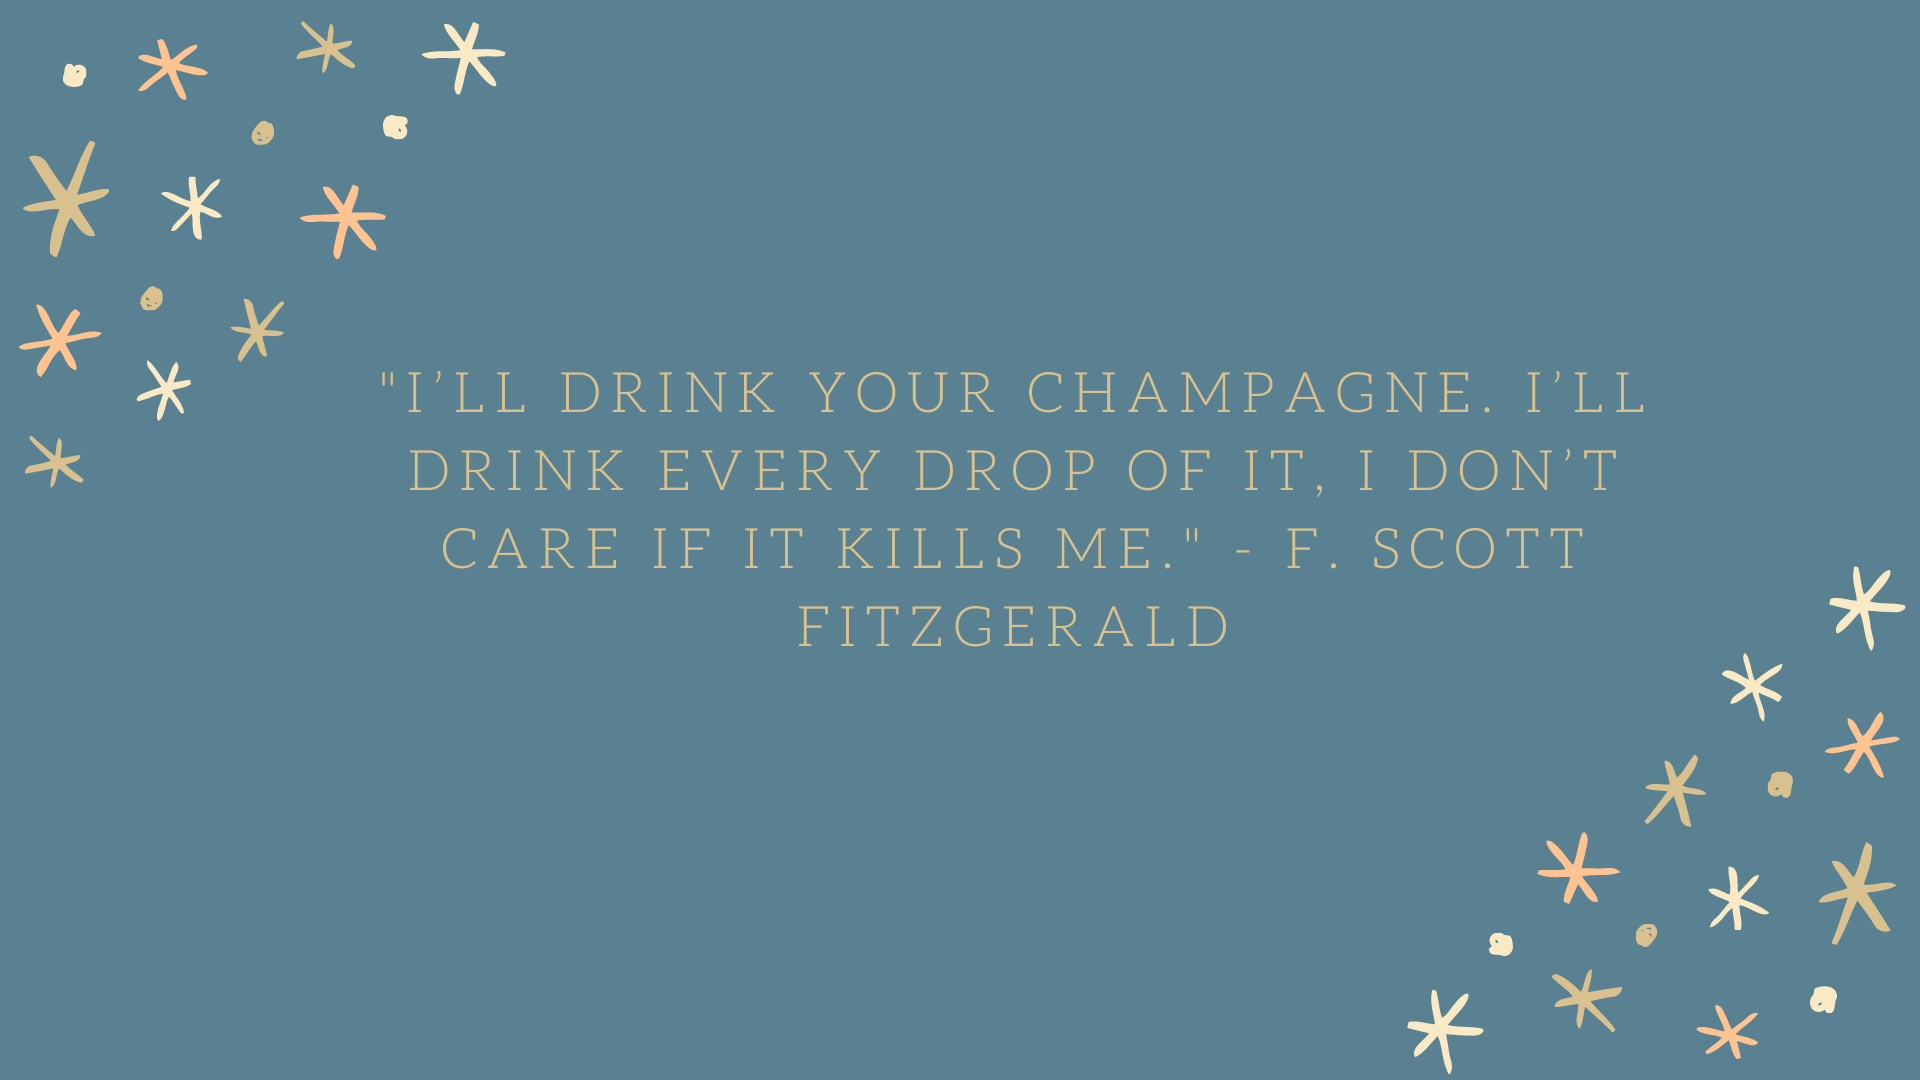 I'll drink your champagne. I'll drink every drop of it, I don't care if it kills me. | F. Scott Fitzgerald